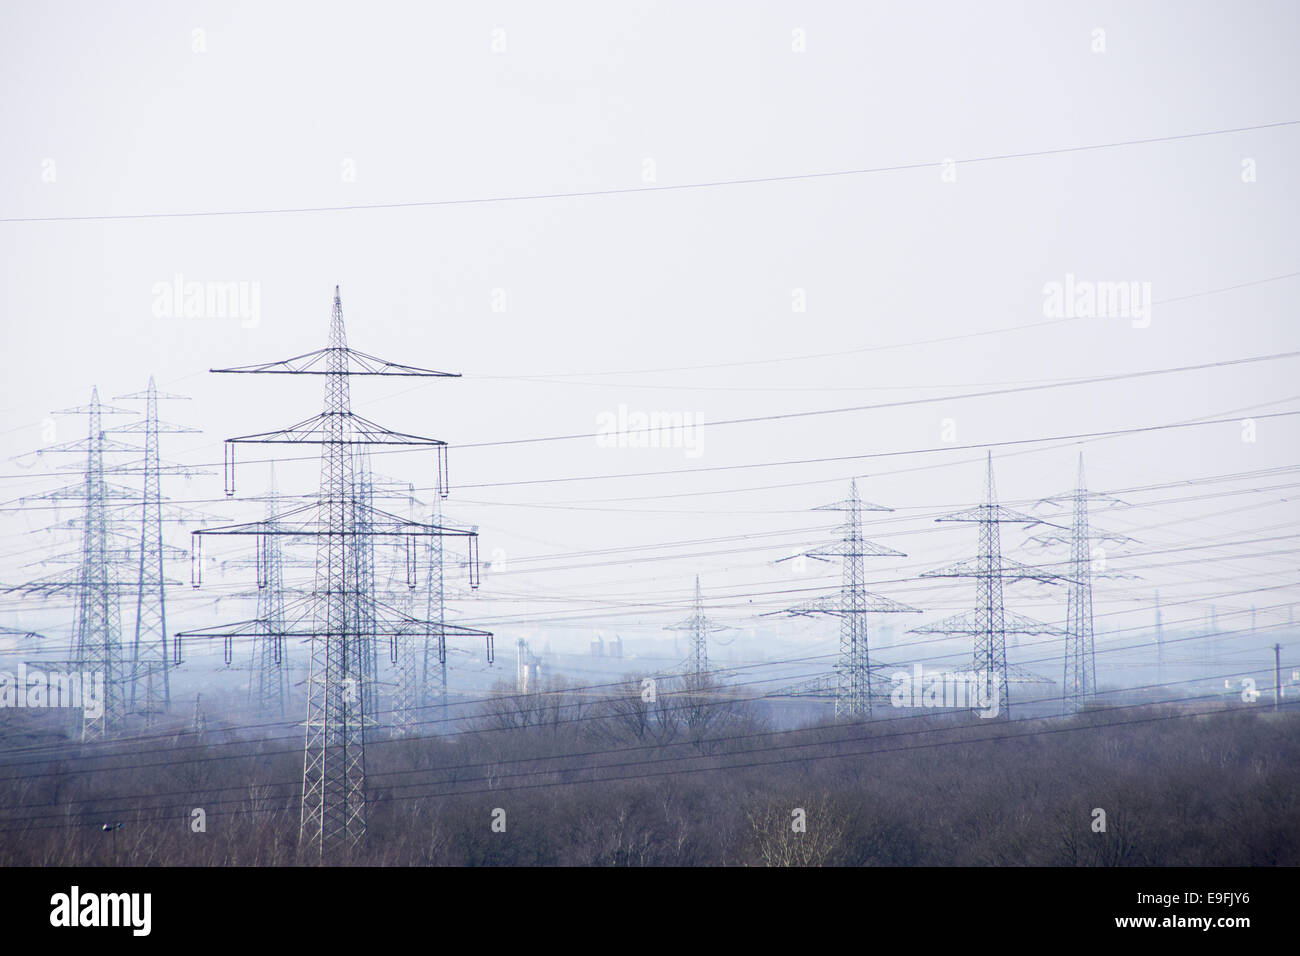 Electrical towers in the ruhr area, germany Stock Photo